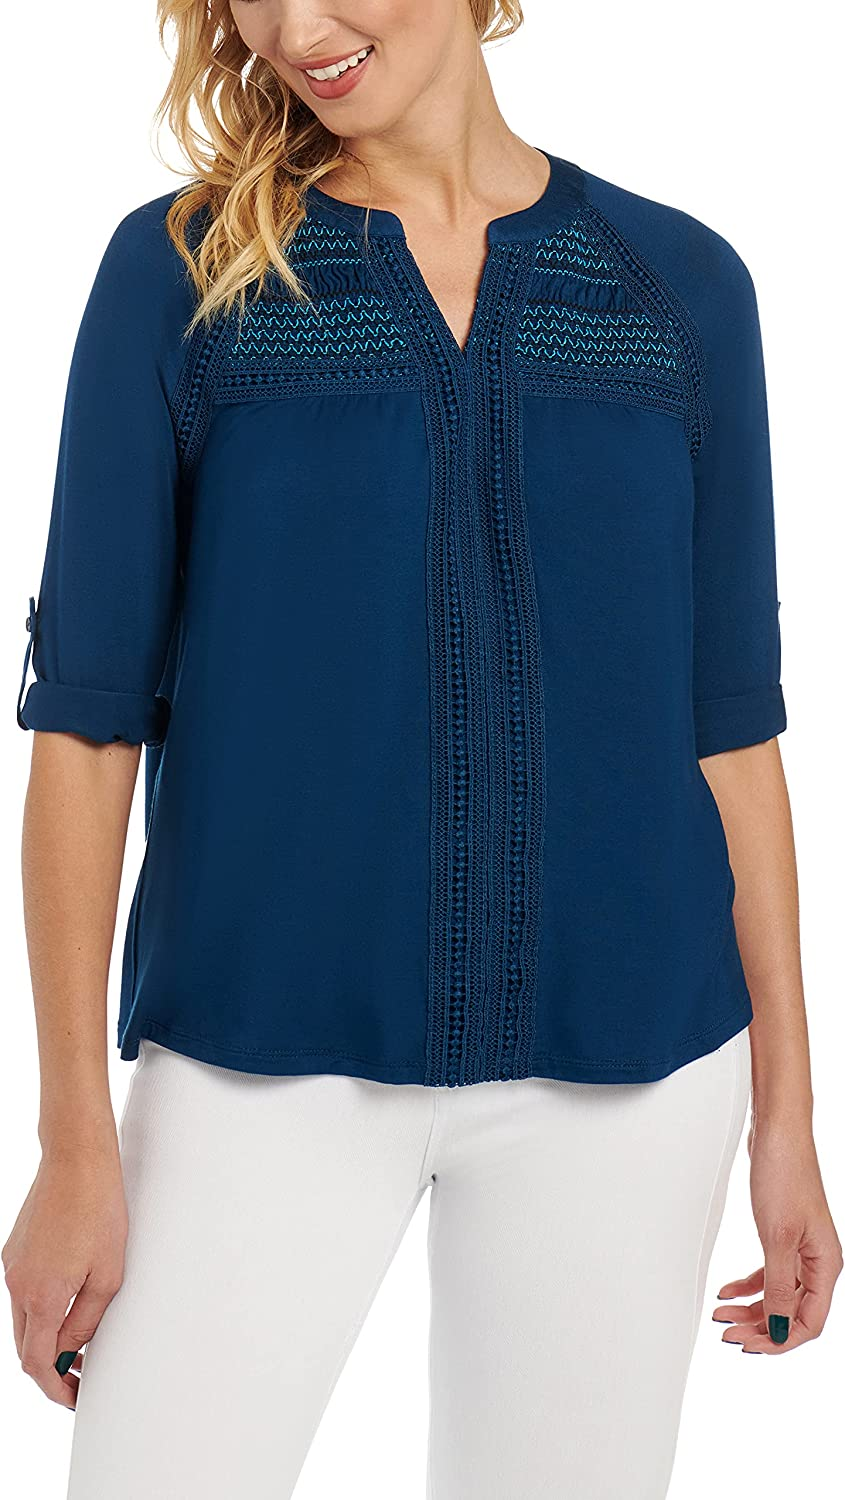 Cable & Gauge Plus Size Roll Tab Sleeve Henley, Crochet Trim, Smocking Detail